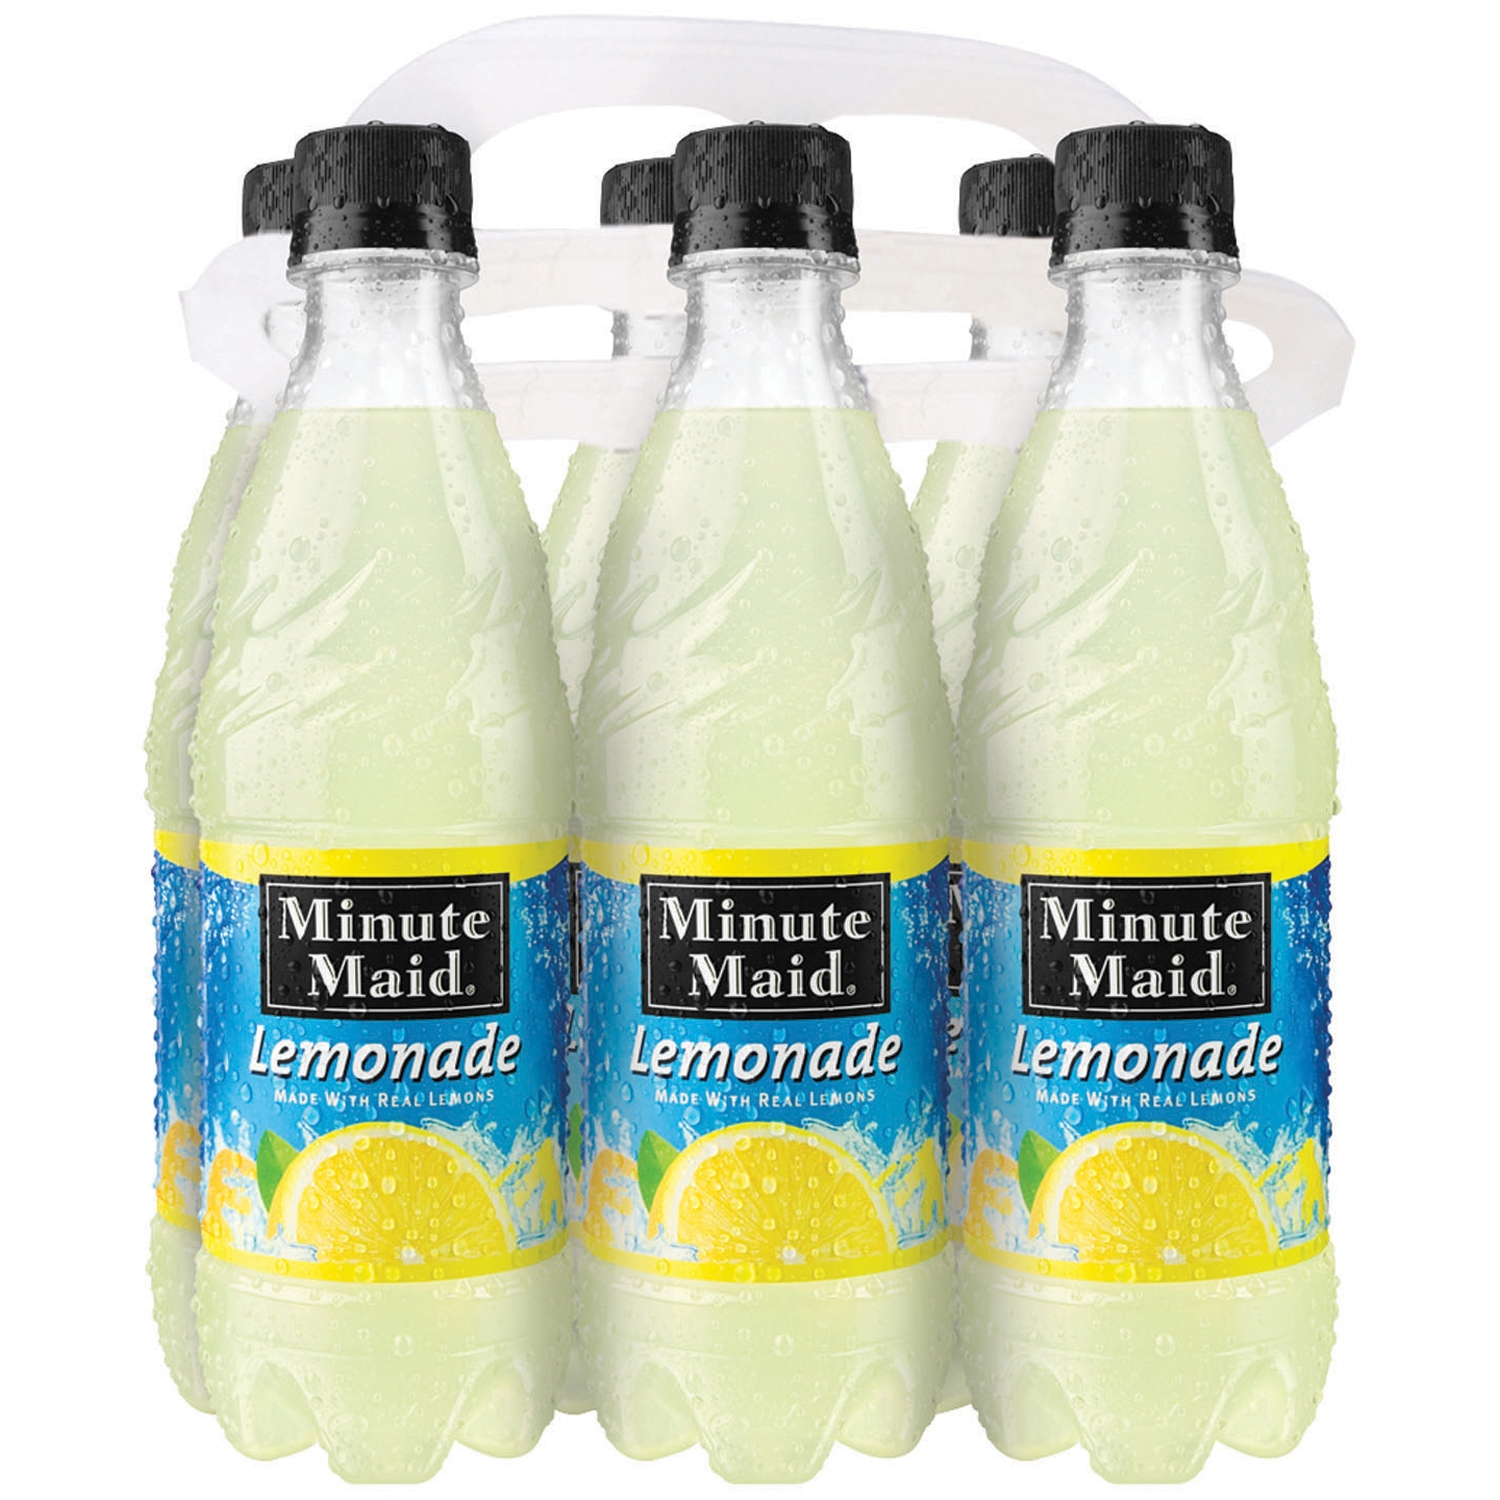 Minute Maid Lemonade 6-16.9 fl oz Plastic Bottles